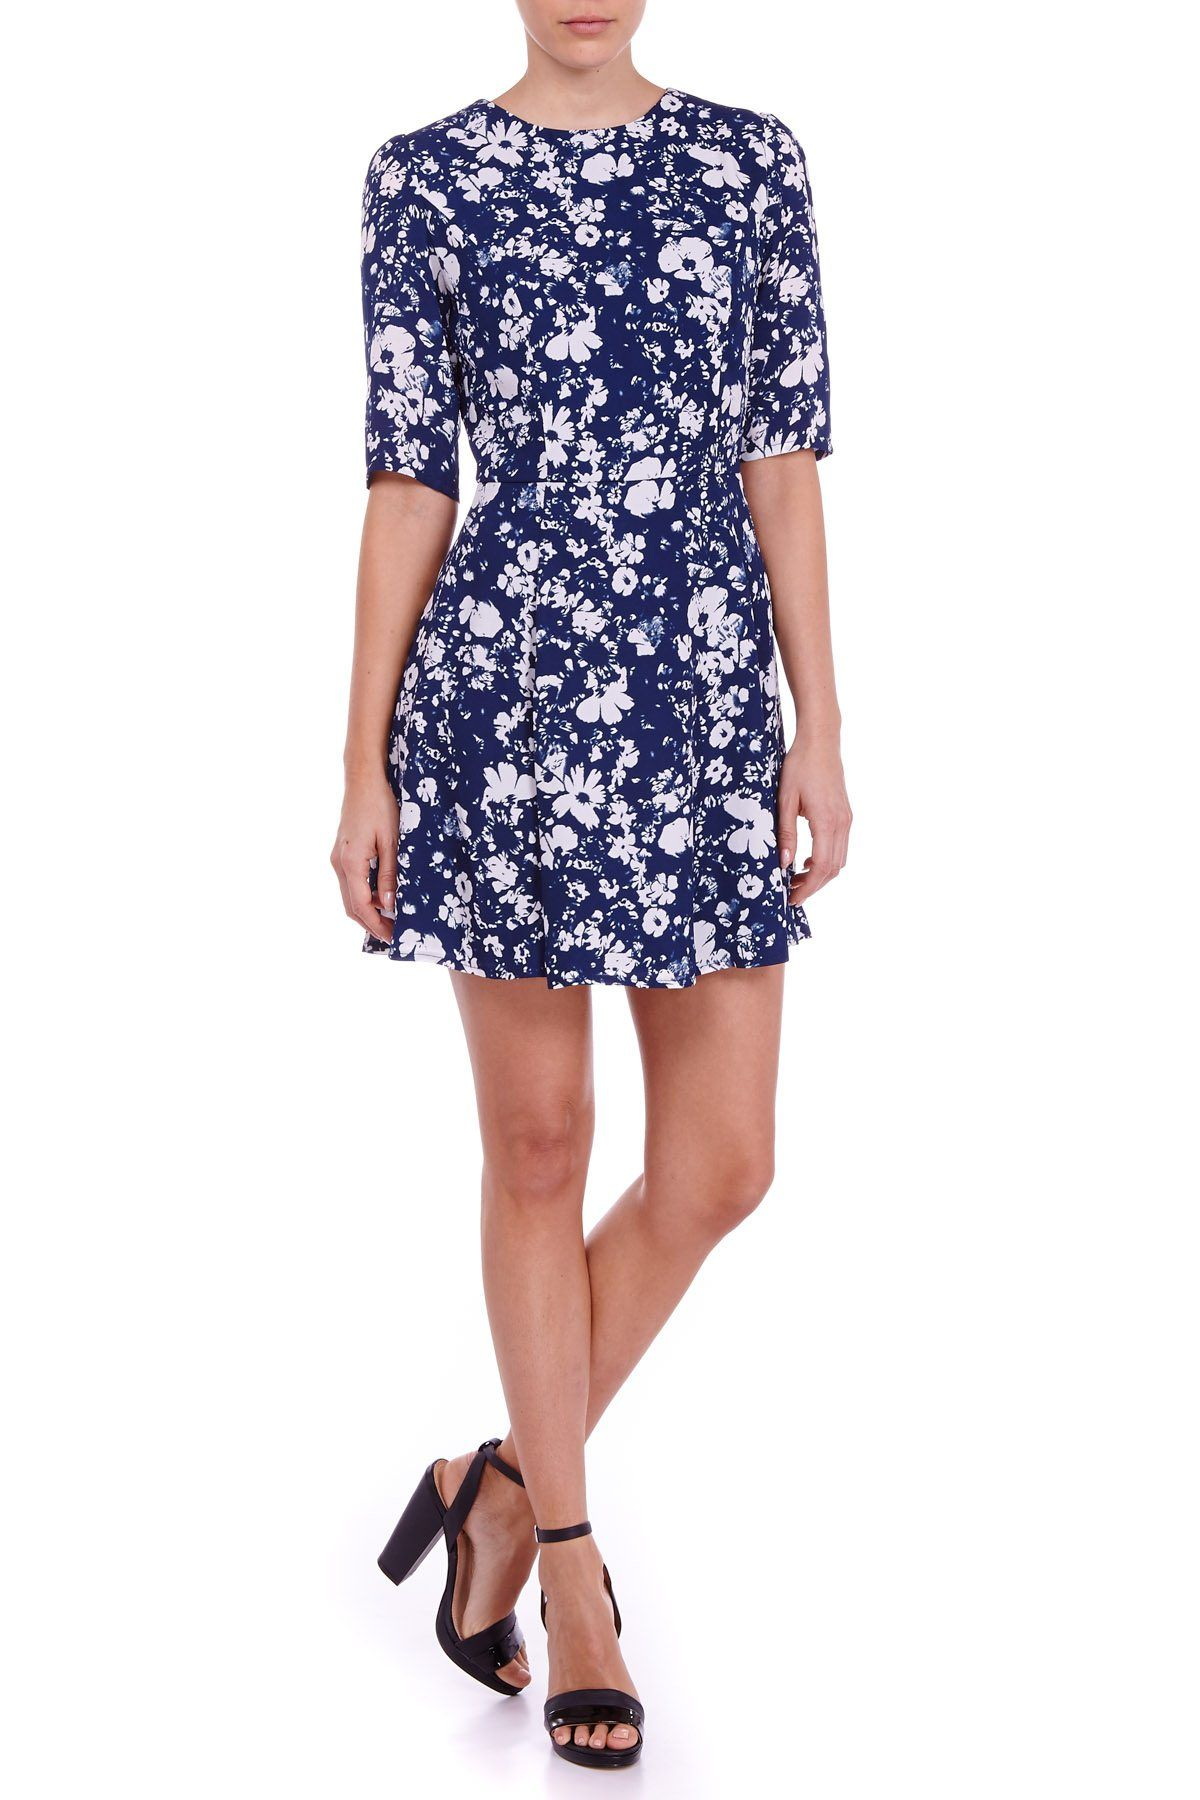 Poppy Lux Colette Dress - Sugarhill Boutique